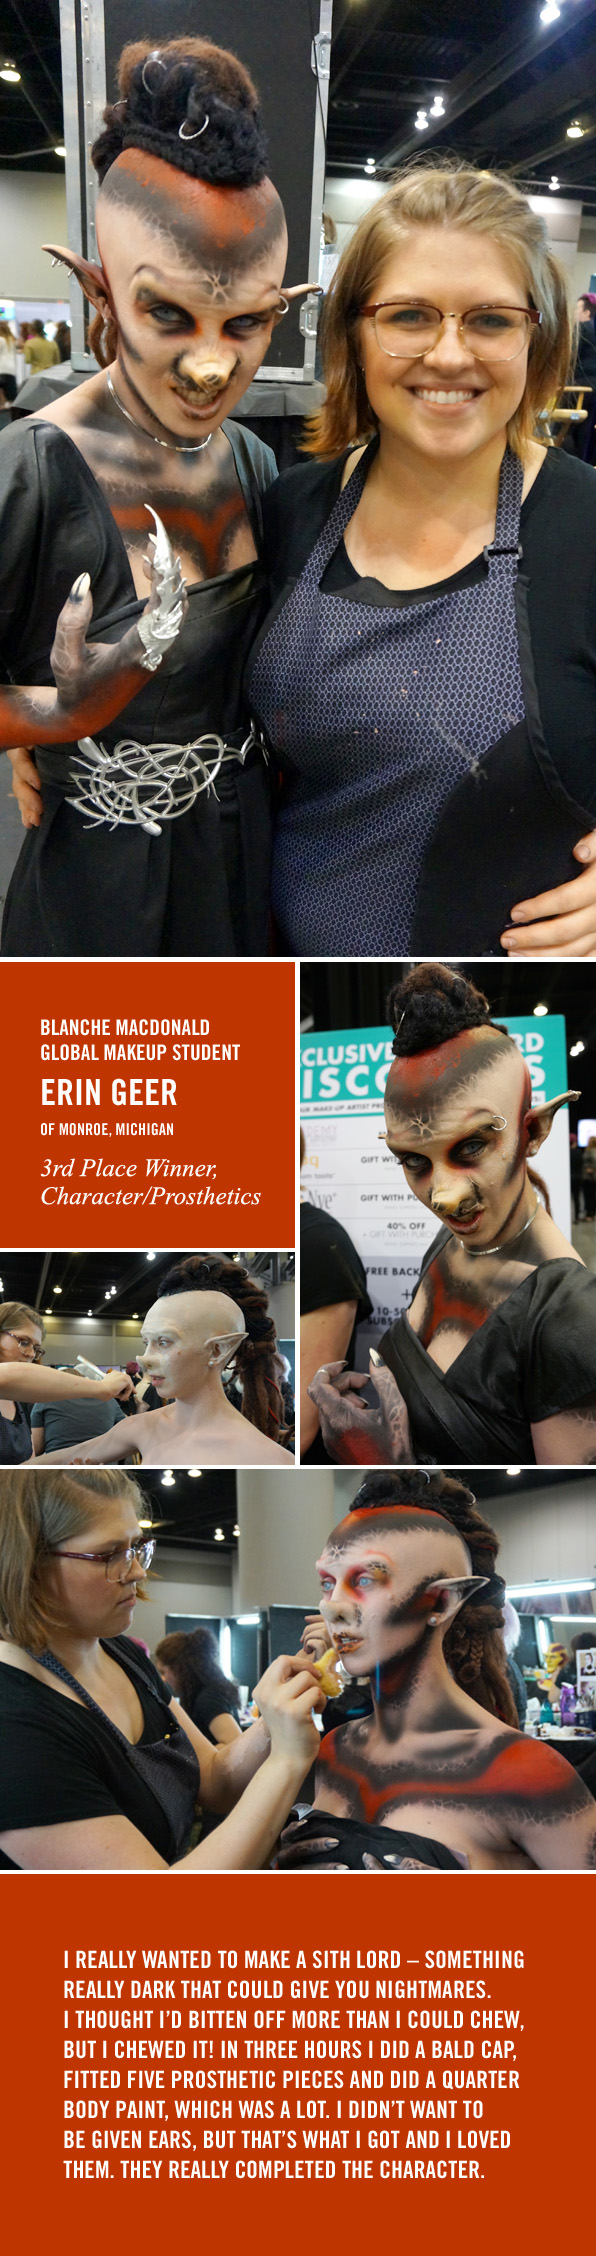 Blanche Macdonald Global Makeup Student Erin Geer from Monroe, Michigan wins 3rd Place at IMATS Vancouver 2016!